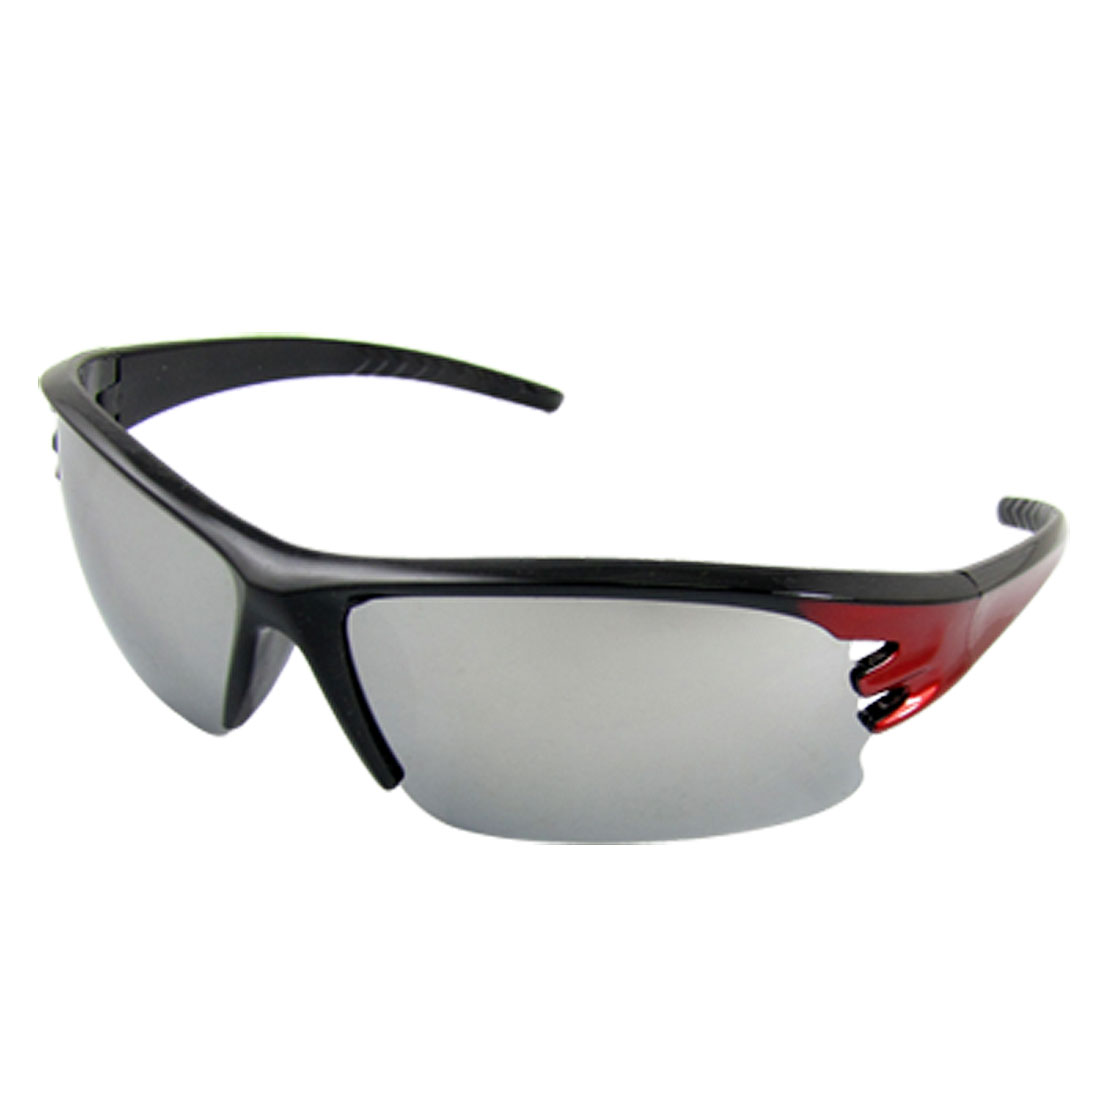 Mirror Lens Red Black Plastic Arms Sunglasses for Women